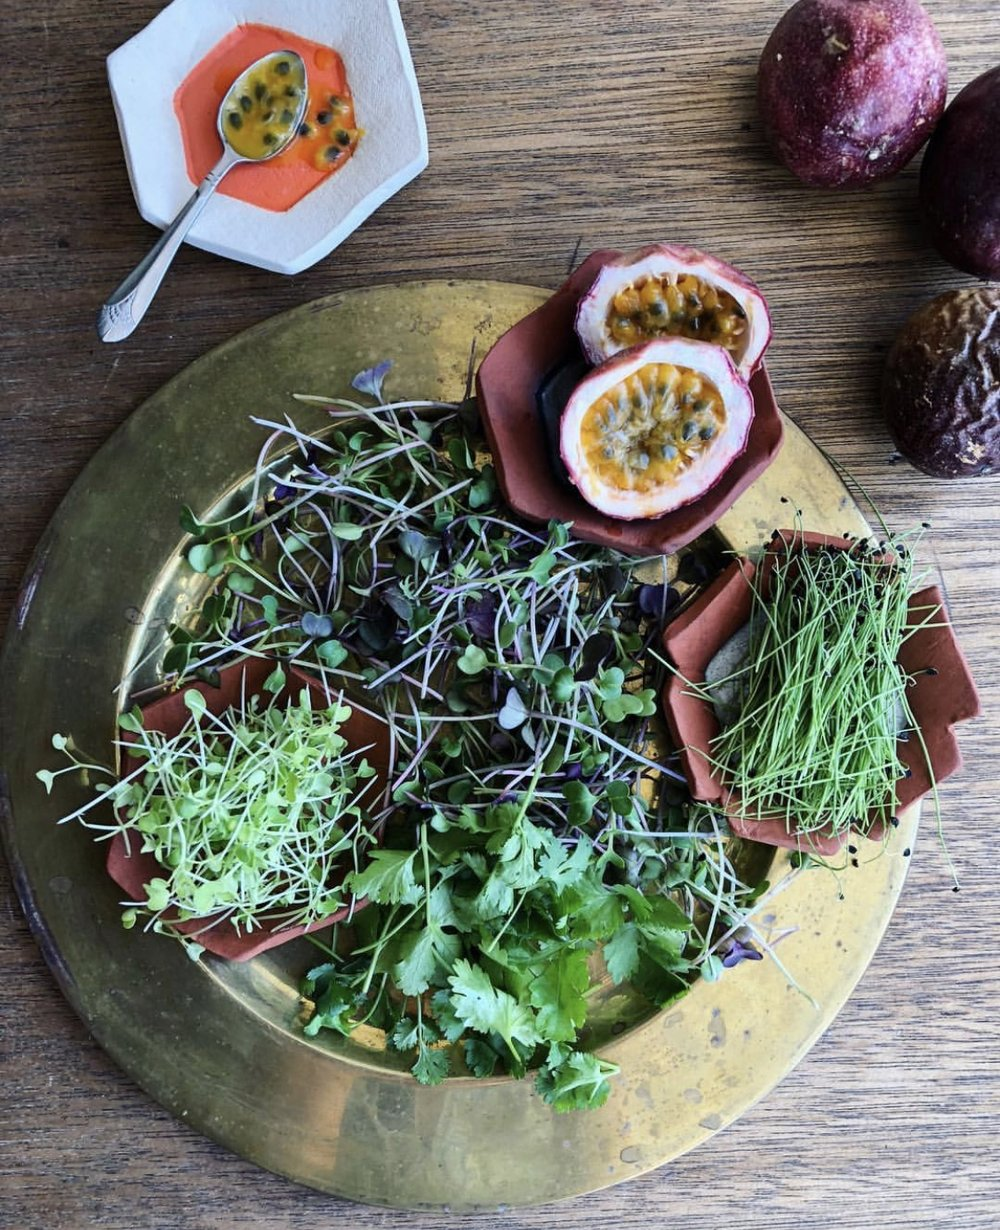 Passion fruit, herbs, sprouts, and microgreens for Botanica Restaurant